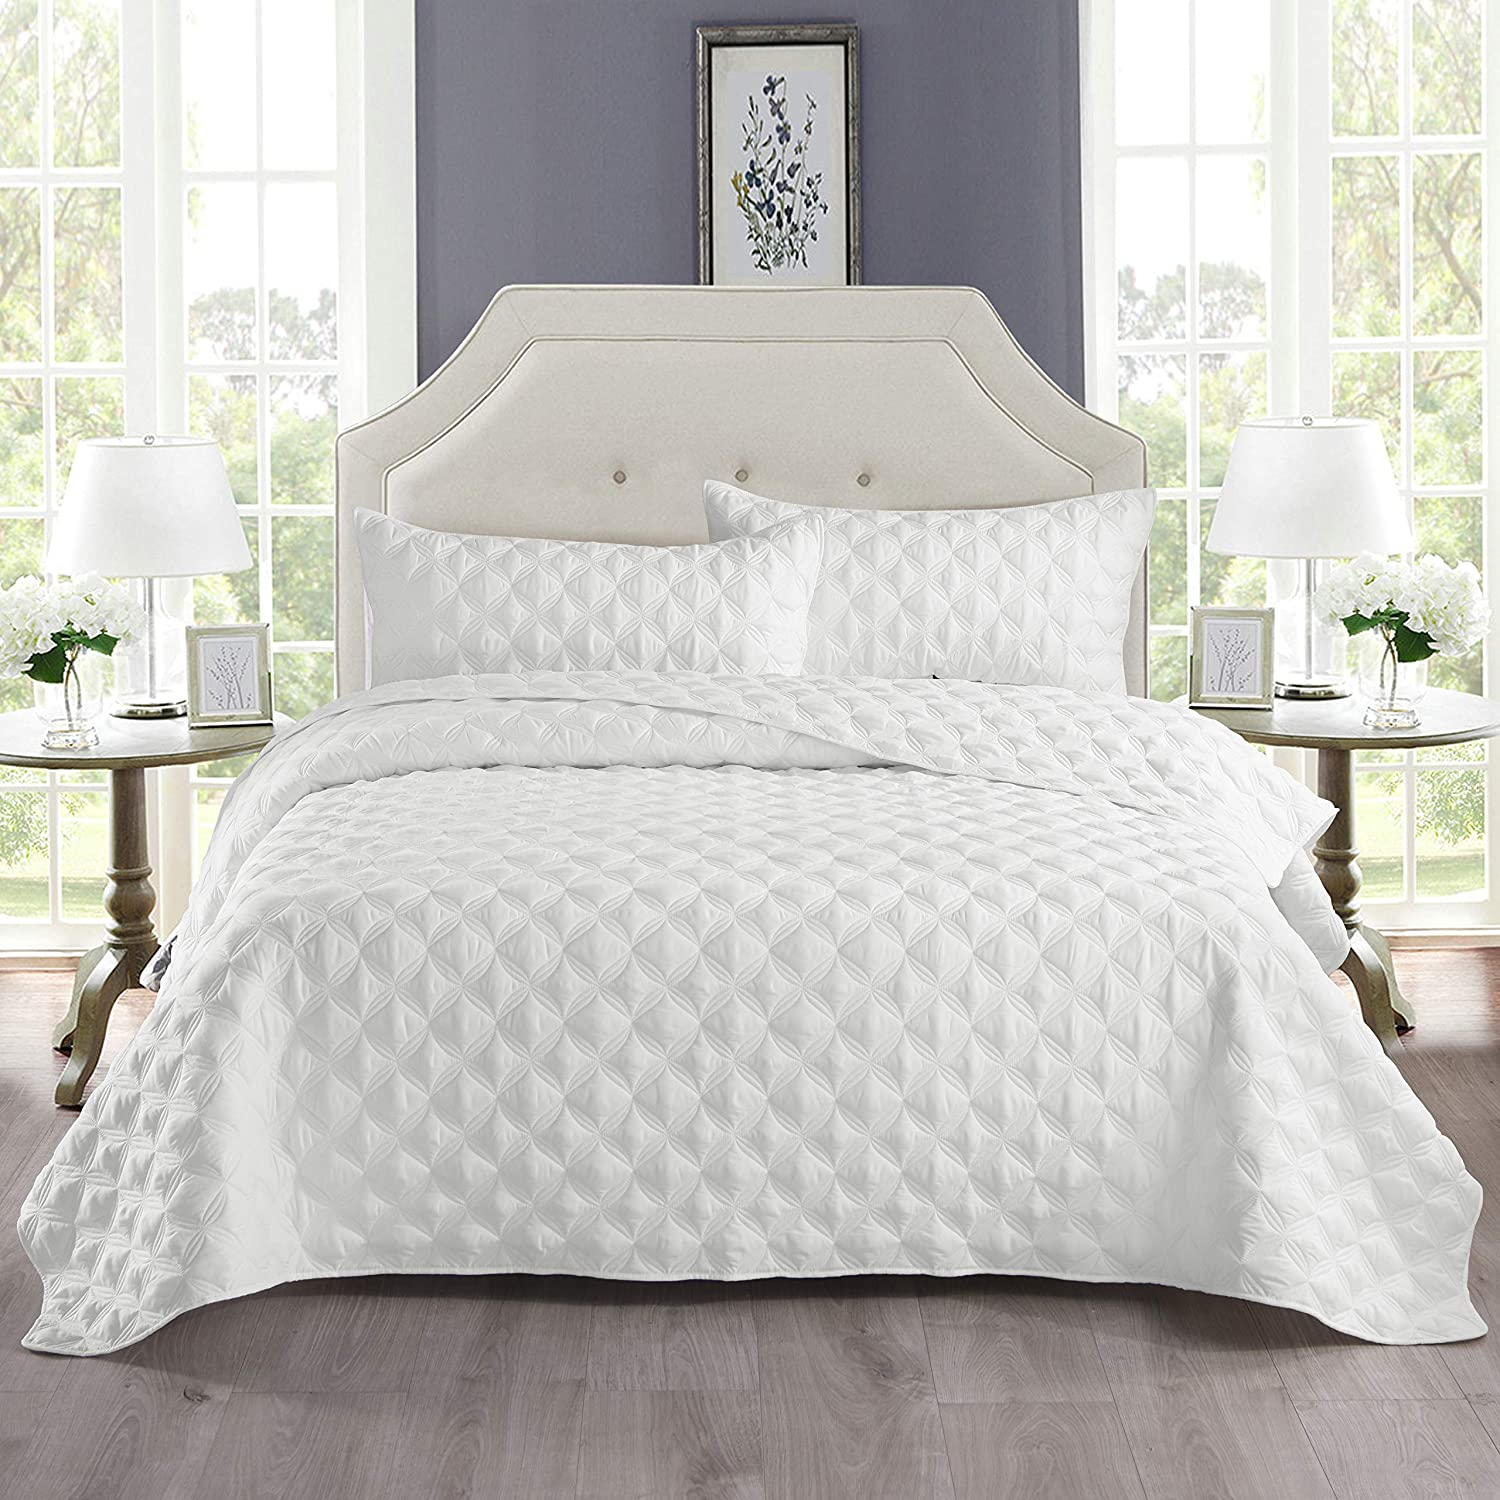 Exclusivo Mezcla 3-Piece Queen Size Quilt Set with Pillow Shams, as Bedspread/Coverlet/Bed Cover(Ellipse White) - Soft, Lightweight, Reversible and Hypoallergenic